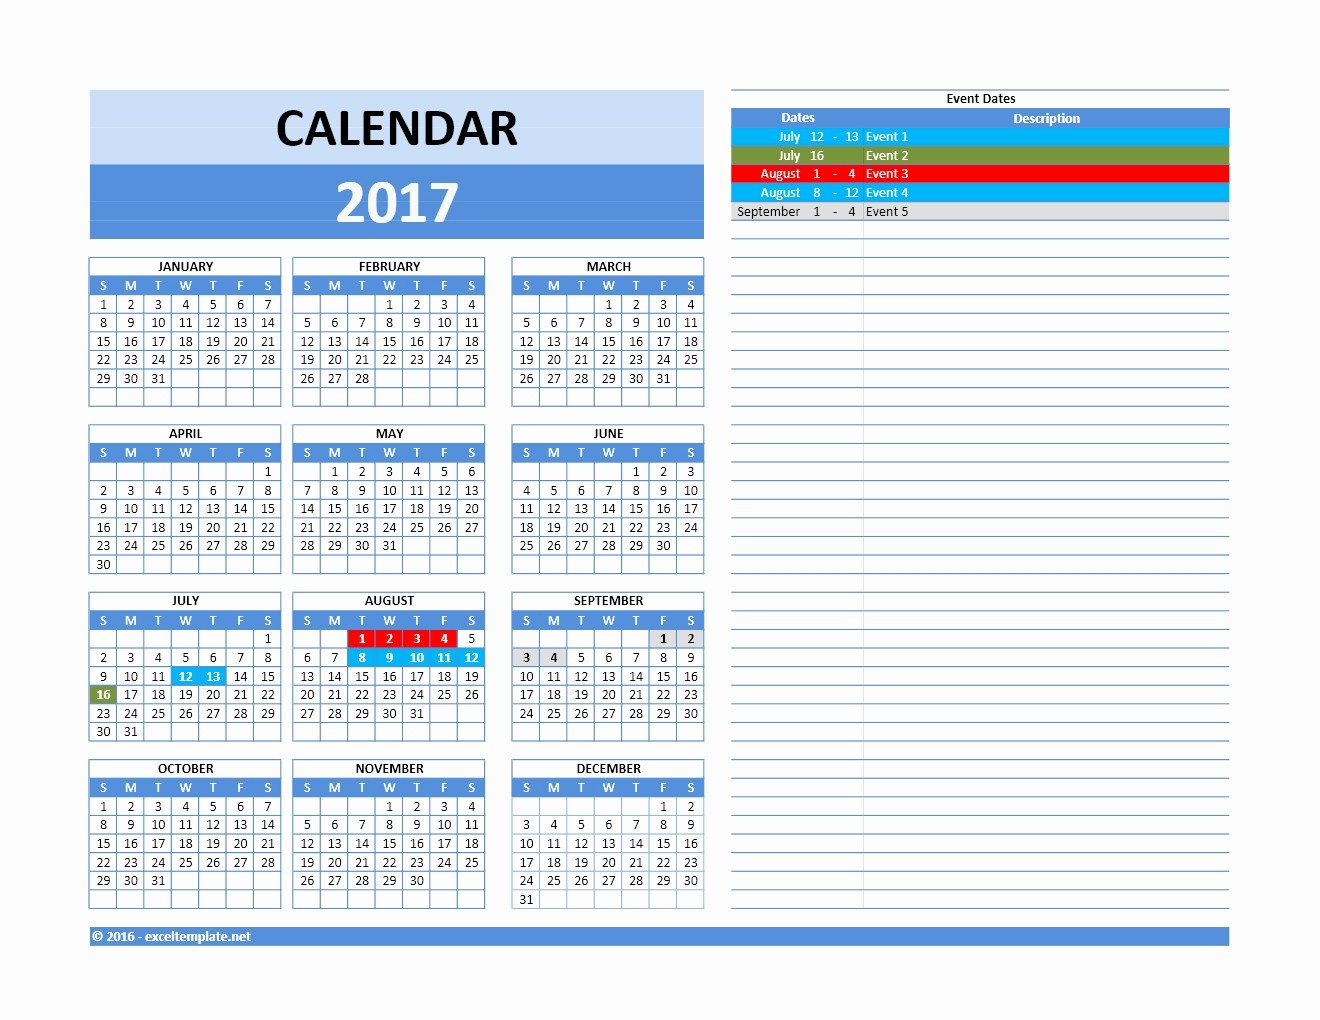 2017 Yearly Calendar Excel Template Unique 2017 and 2018 Calendars